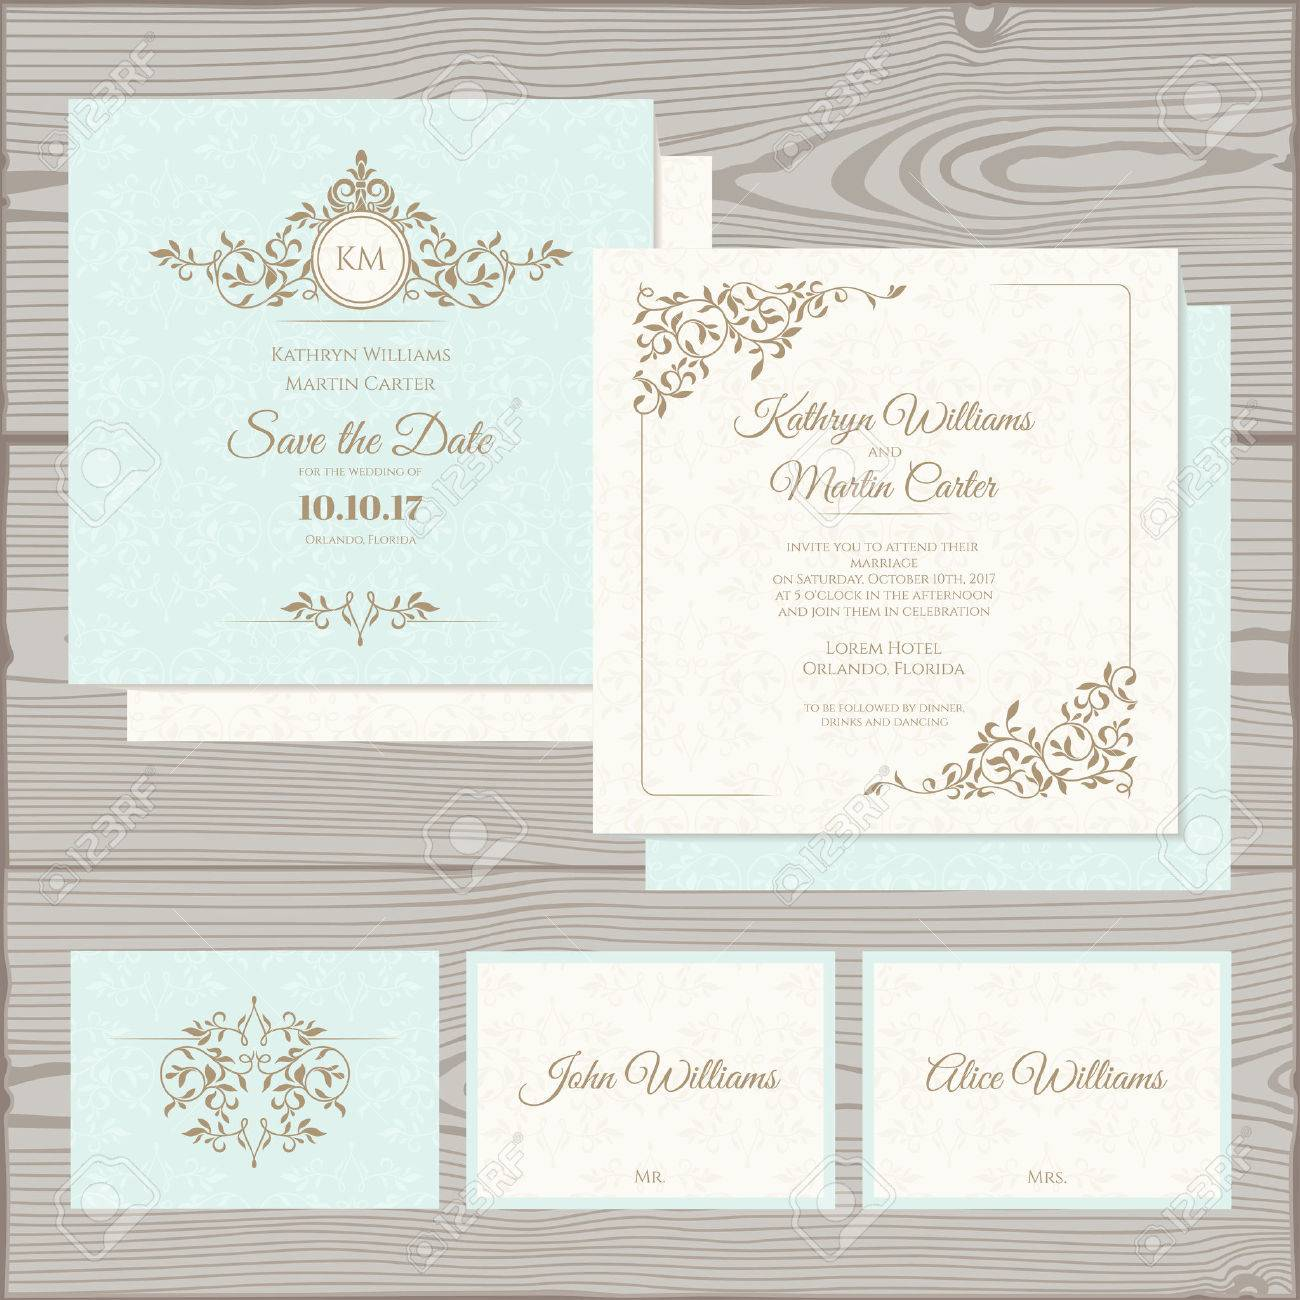 Wedding invitation, save the date card, place card. Stock Vector - 50020819